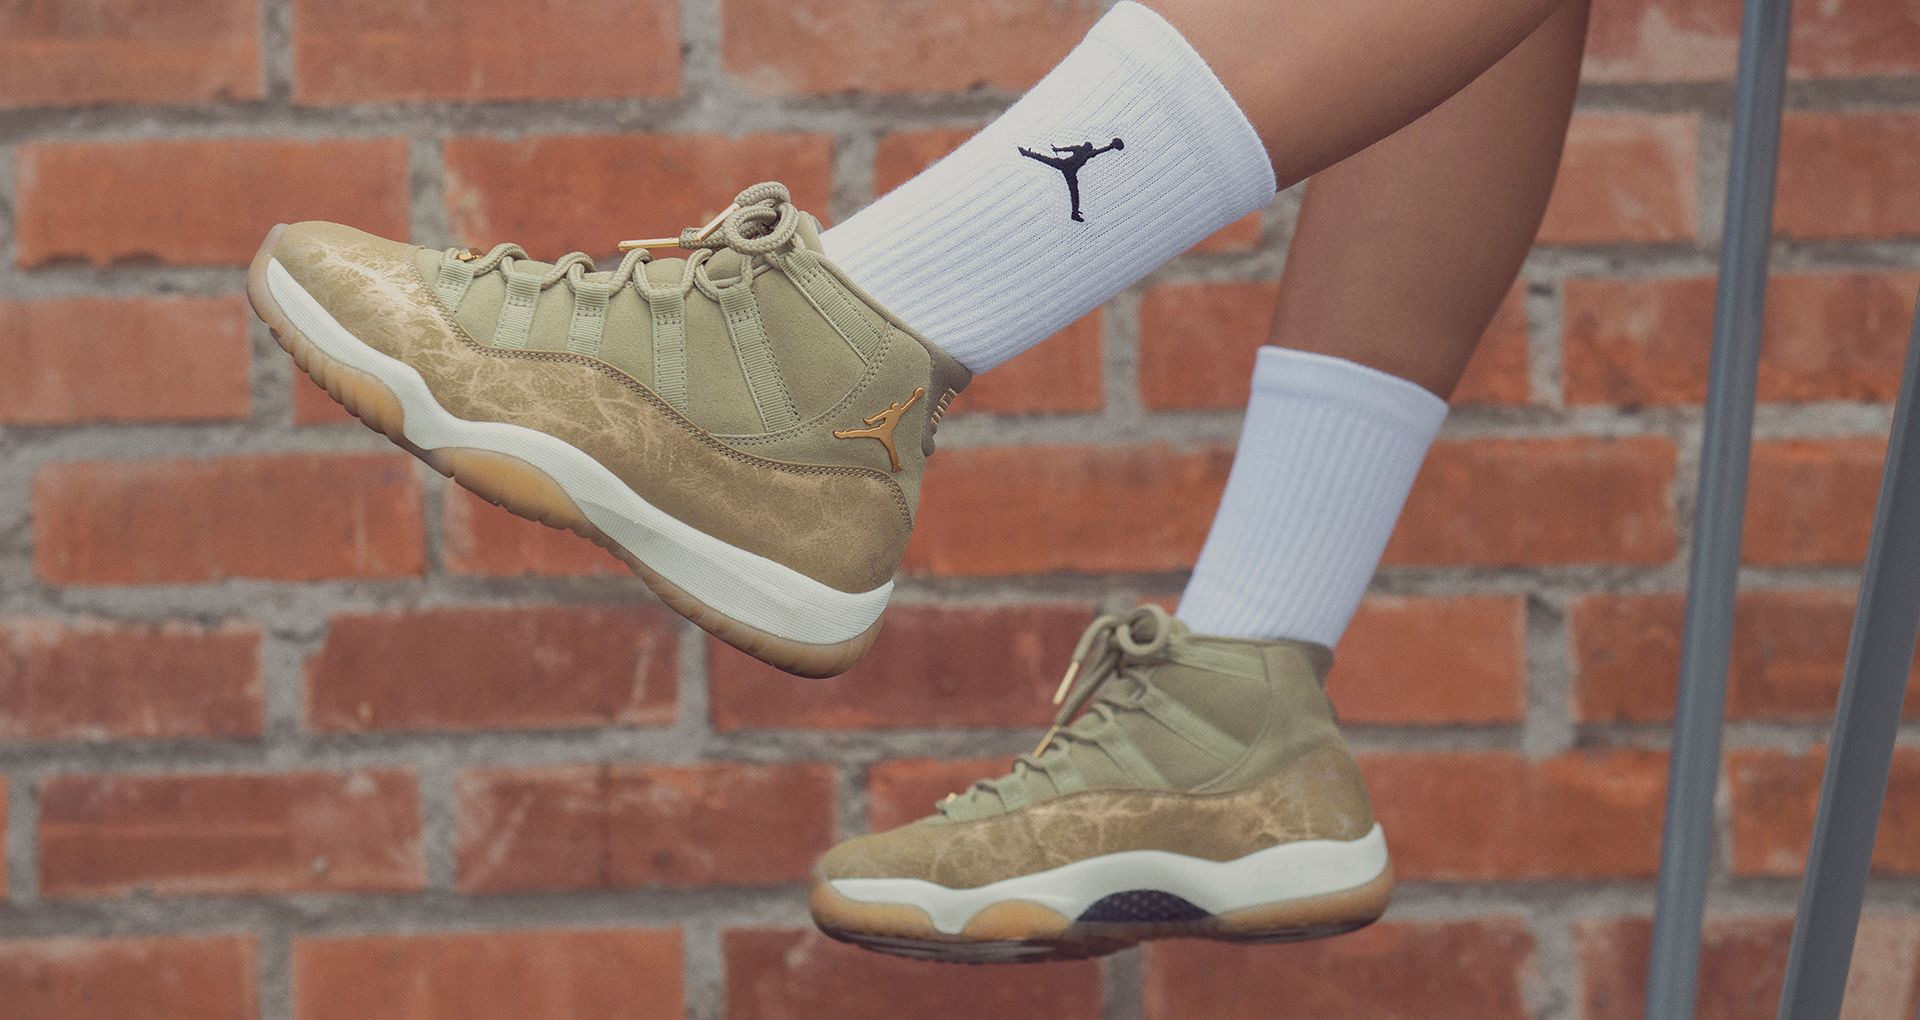 WMNS AIR JORDAN XI OLIVE LUX  220 AVAILABLE 11 23 AT 10 00 AM EST Following  the tradition of specialized holiday AJXIs for women. 8c0913463